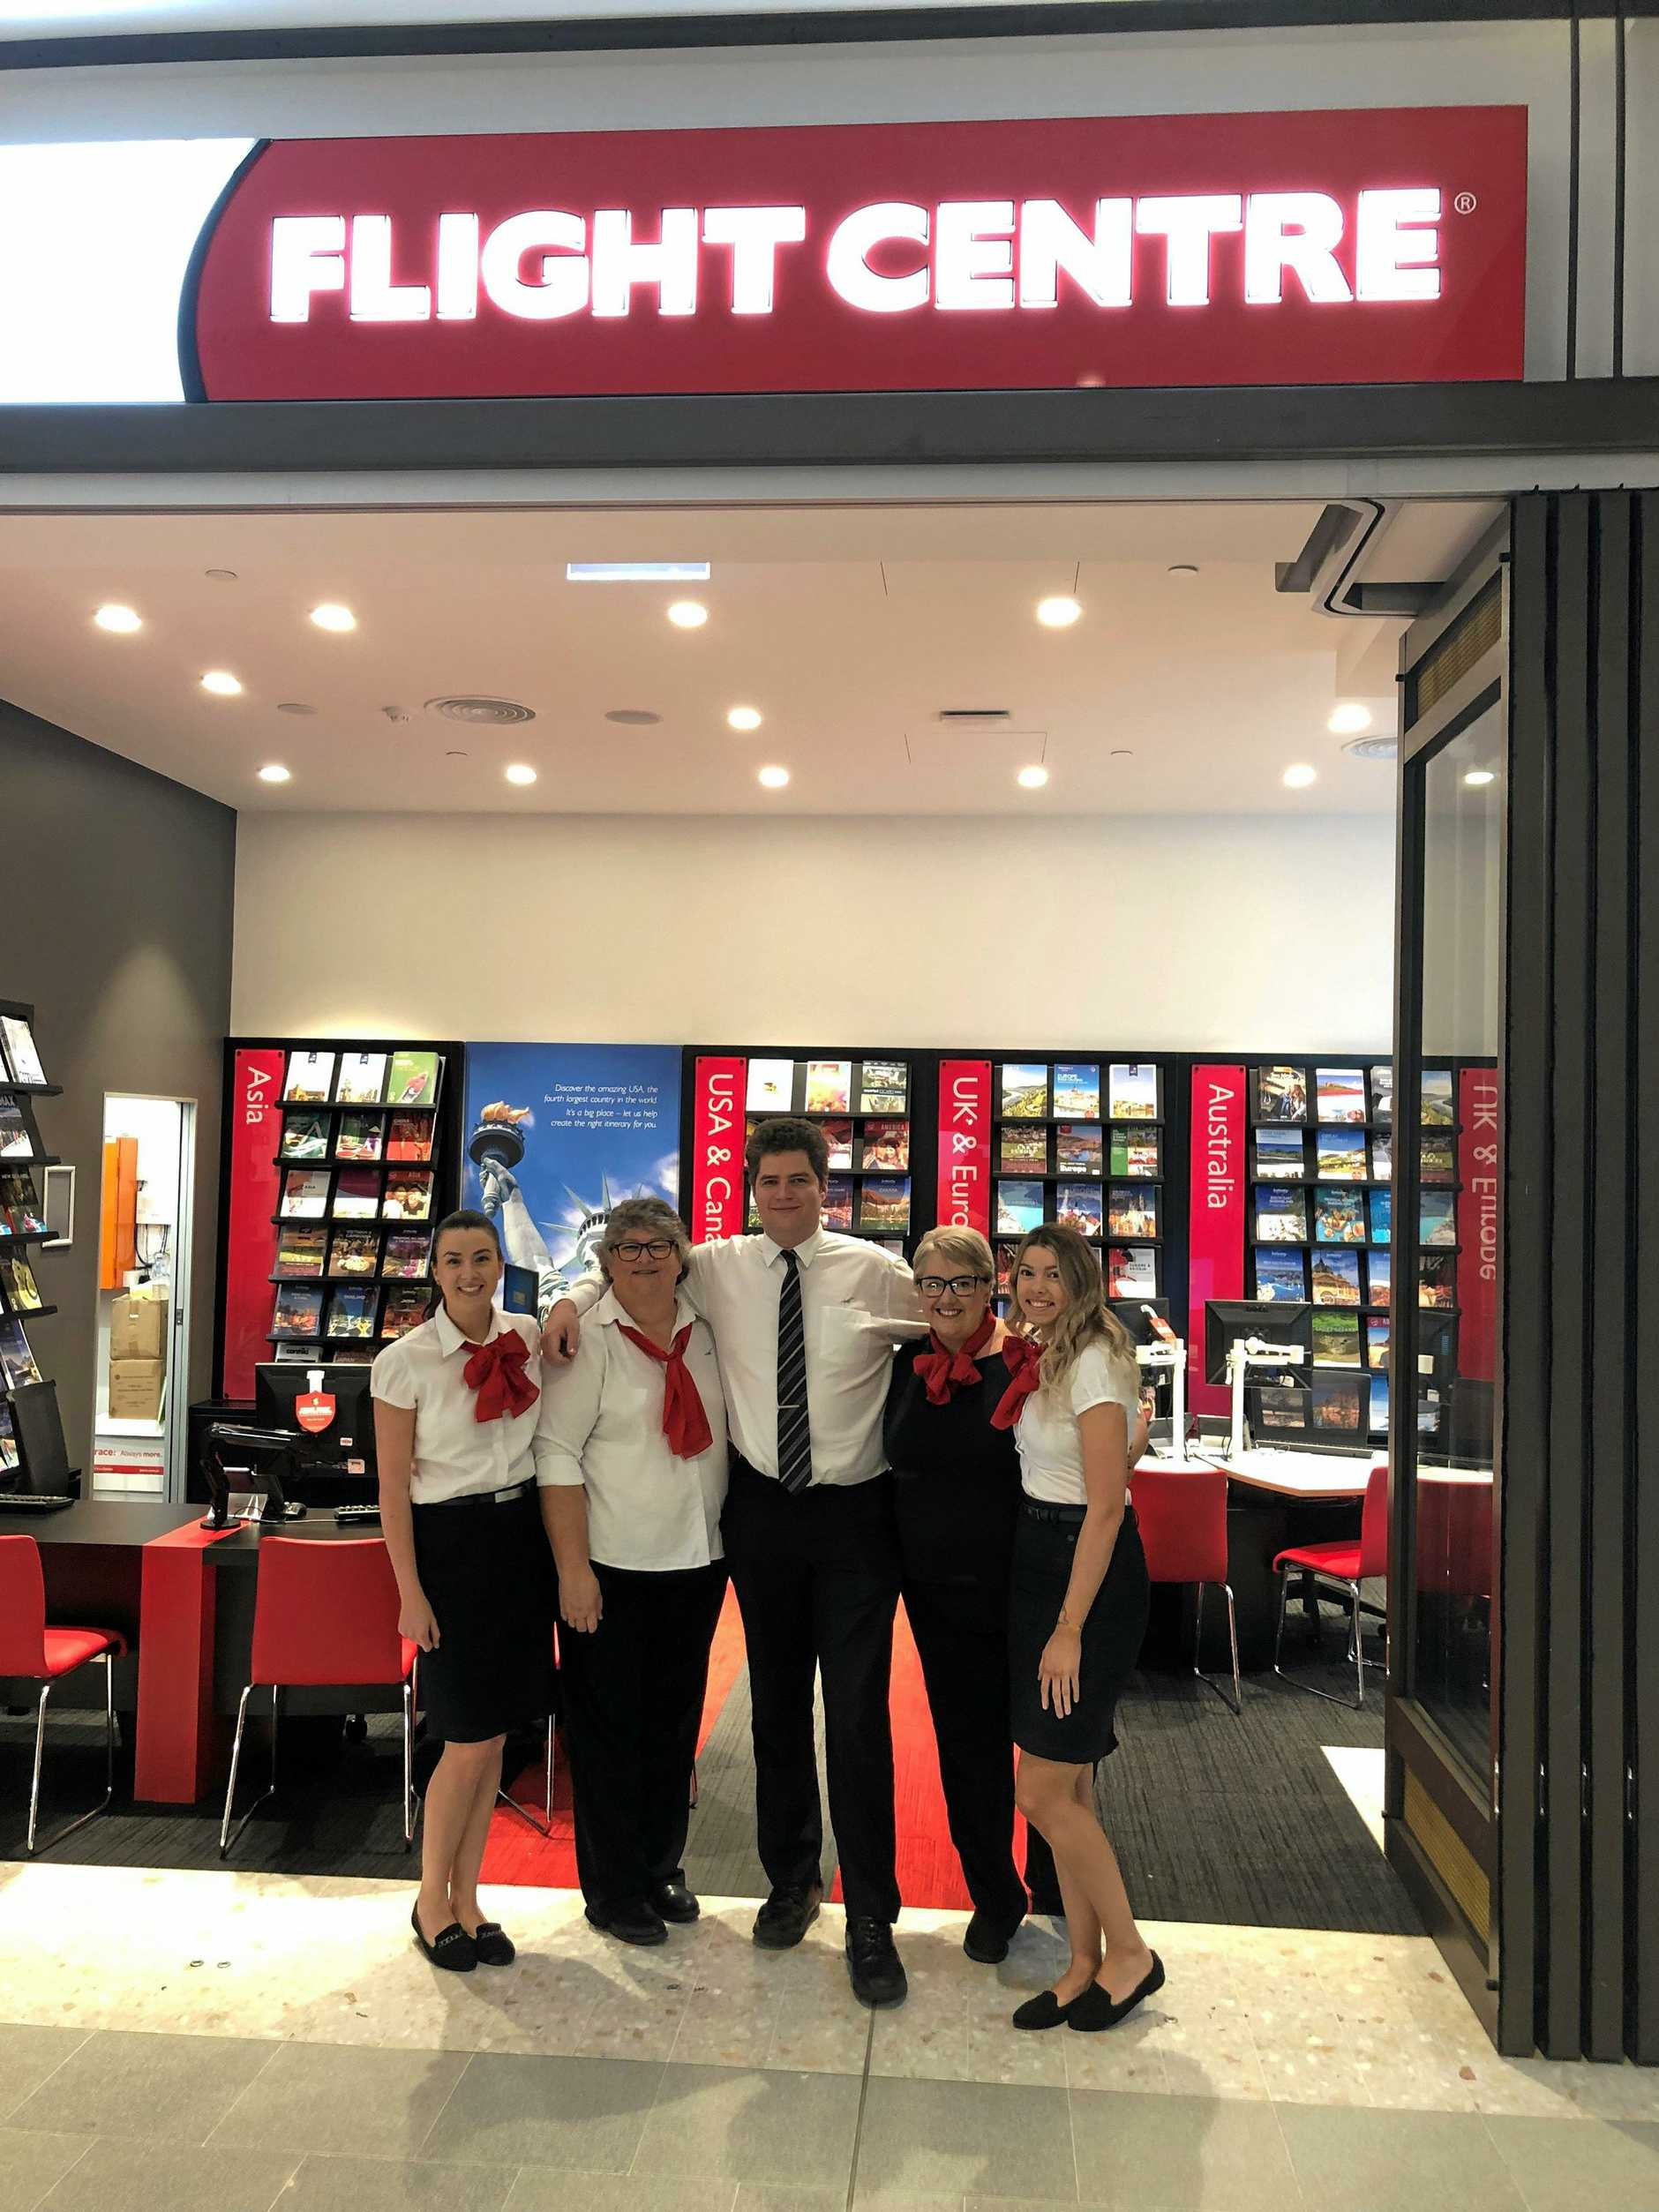 OPEN FOR BUSINESS: Excited to be opening the new Flight Centre store are (from left) Tennille Smith, Kath Grandison, James Robarts, Angela Wilkinson and Taylor Southgate.